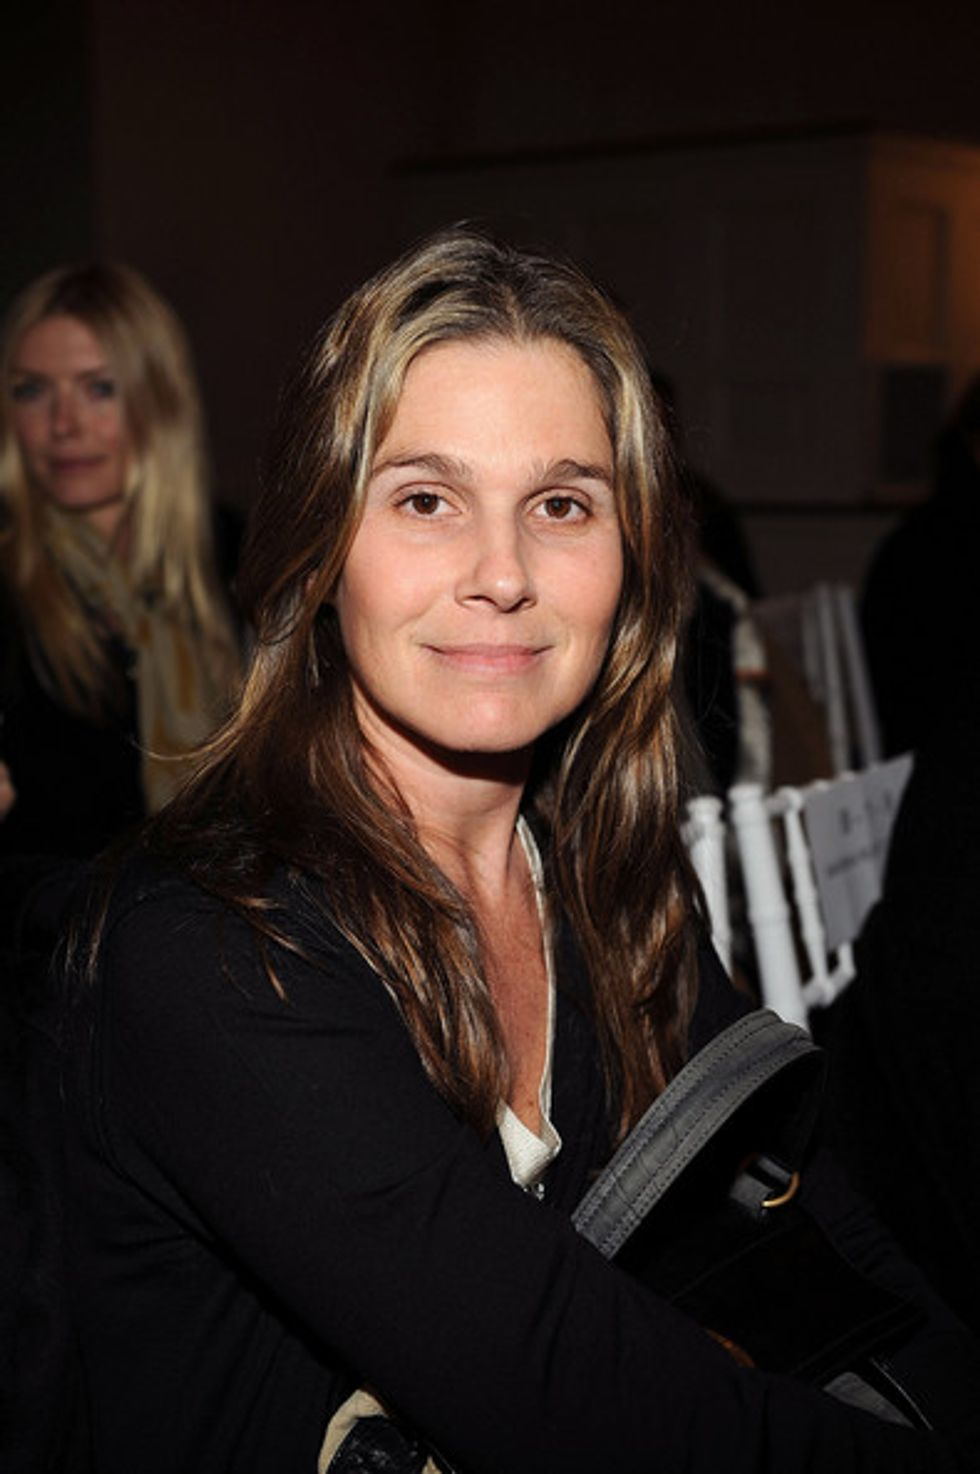 Aerin Lauder Goes Solo + DVF for Gap Kids in Today's Style Scraps